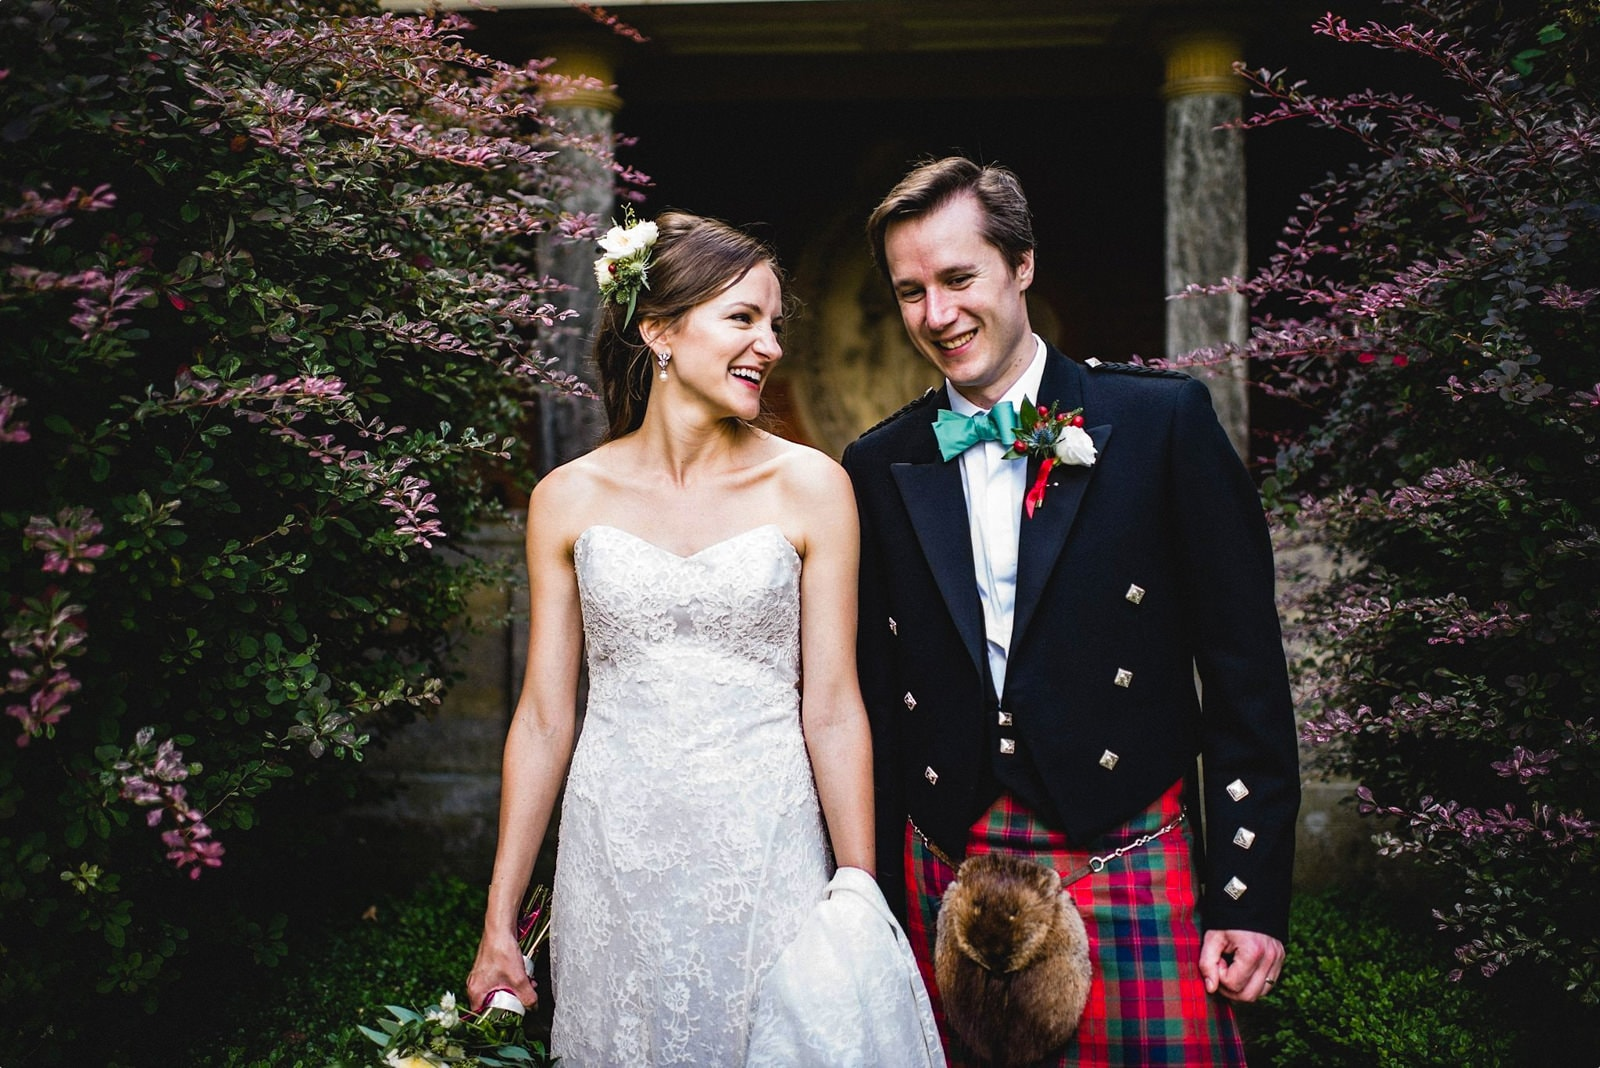 Bride and Scottish groom in a kilt walk together laughing